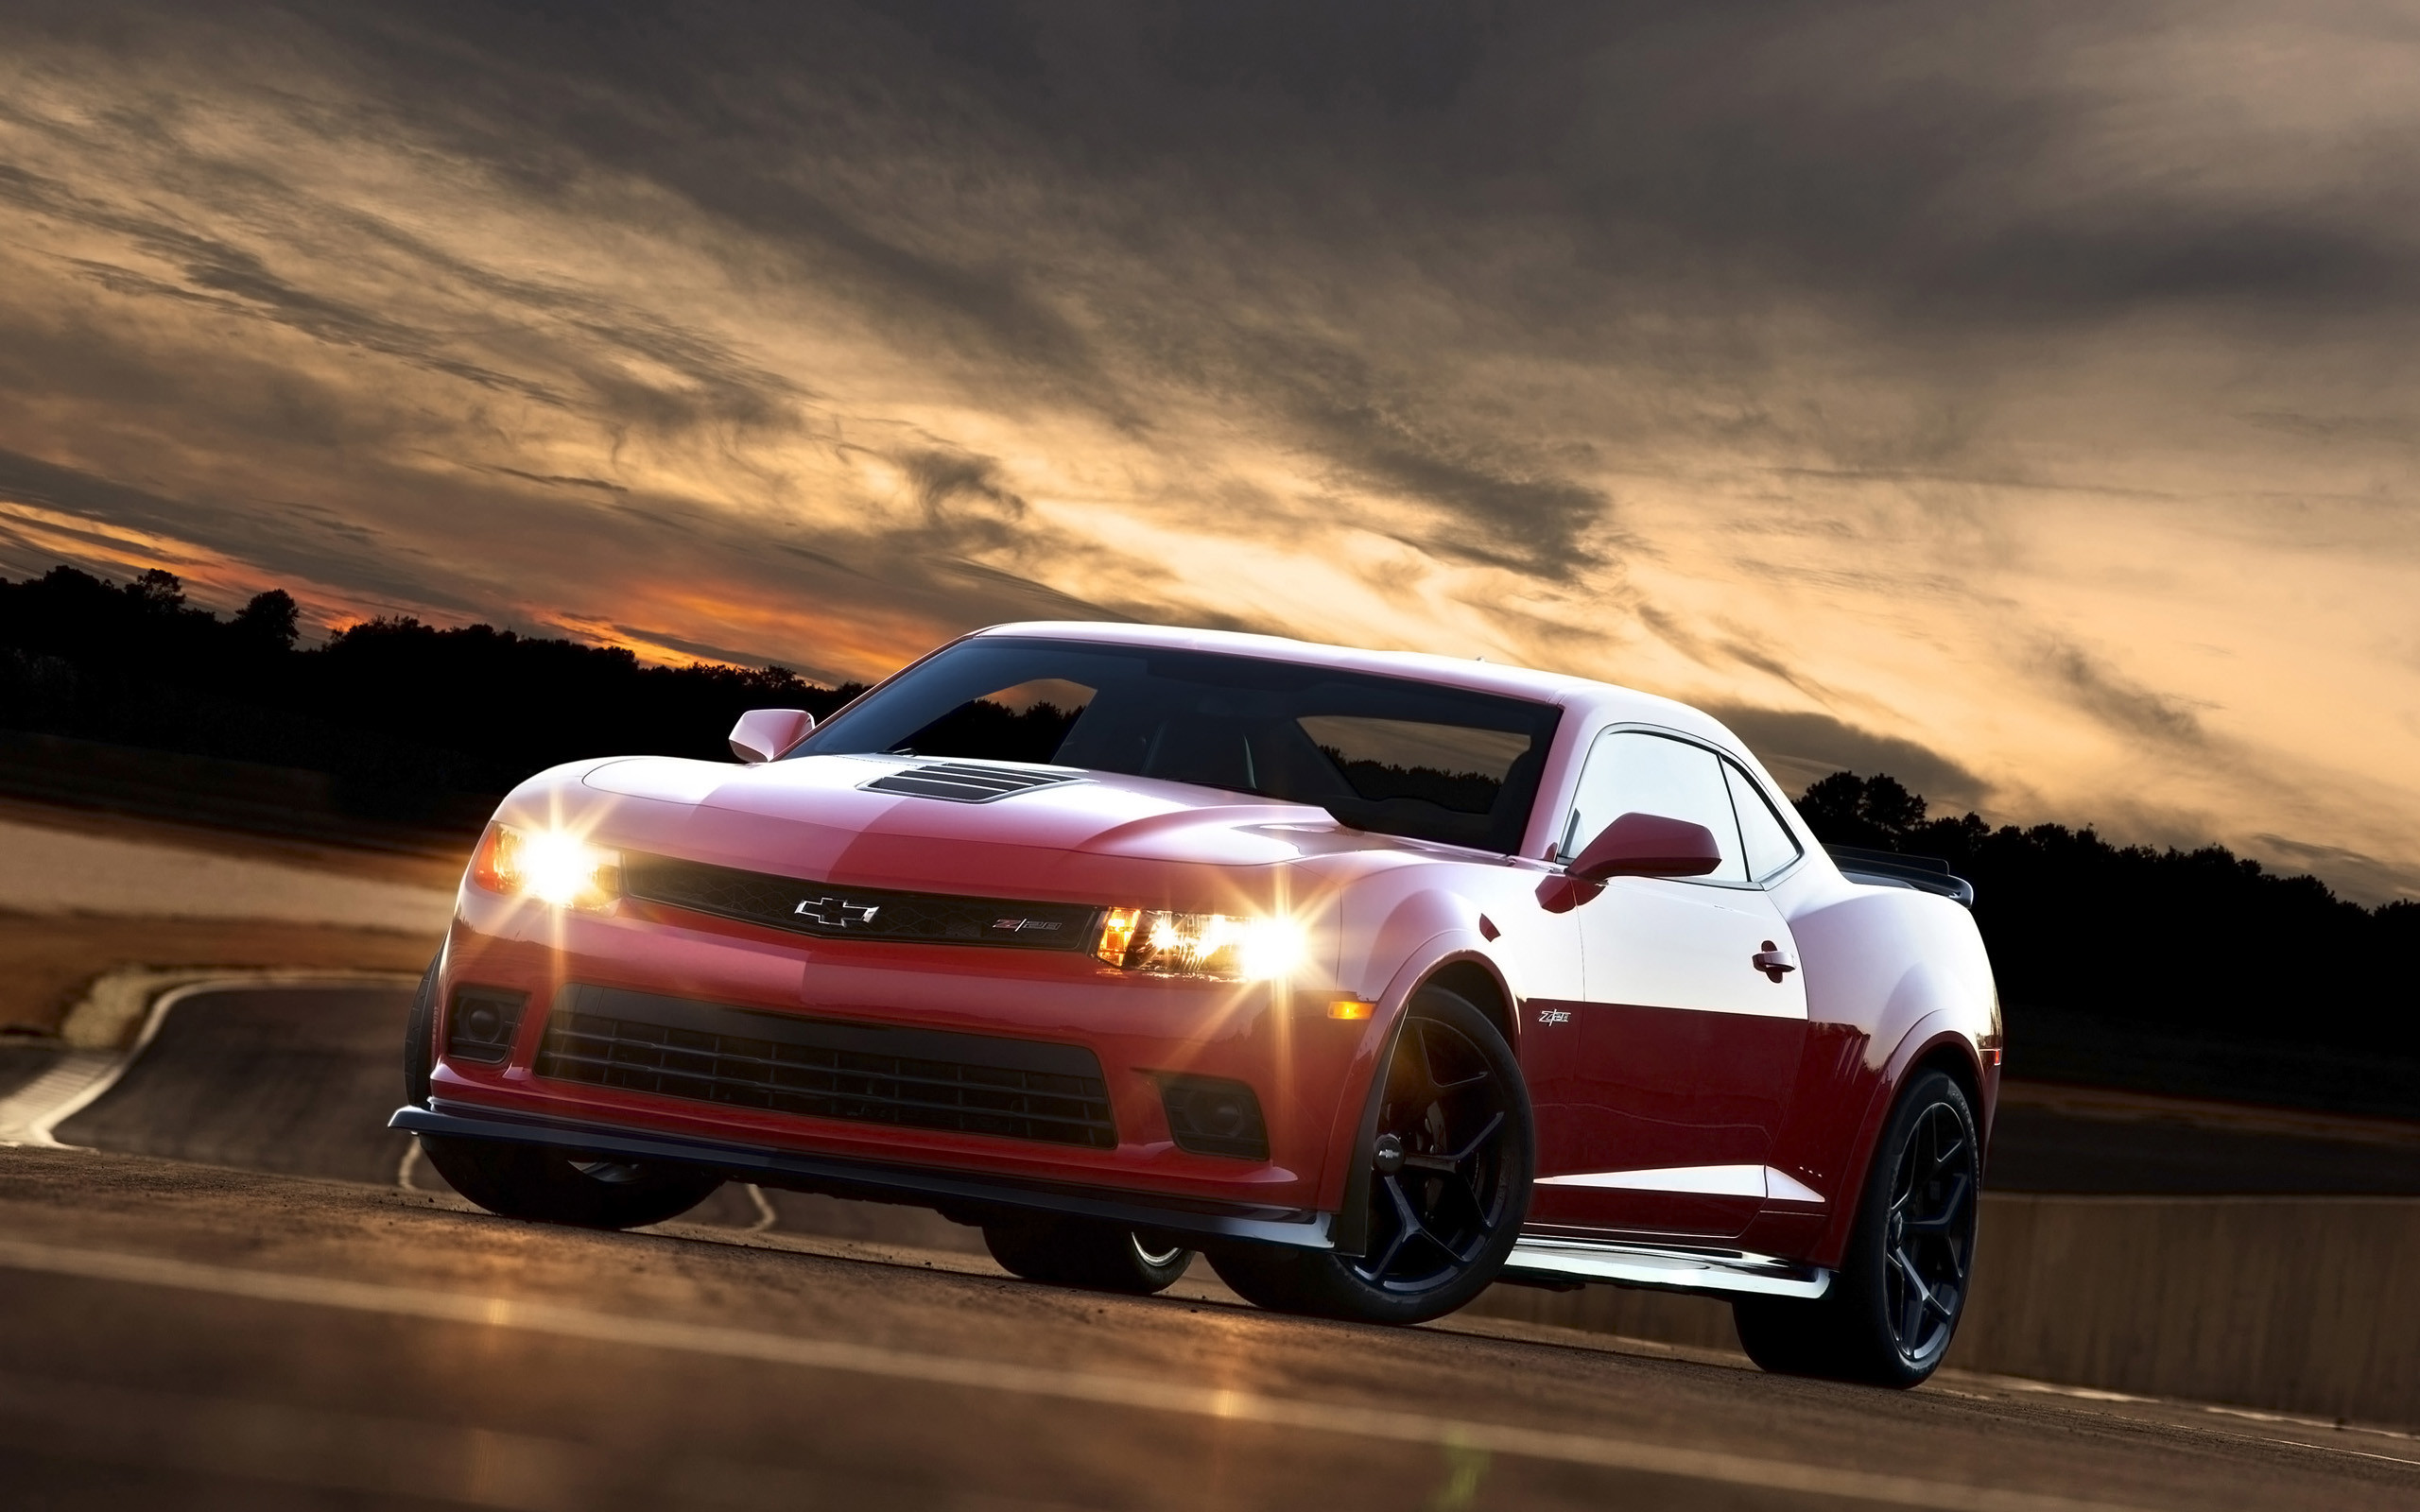 2560x1600 Chevrolet Camaro SS Car Wallpapers HD Wallpapers | 3D Wallpapers |  Pinterest | 3d wallpaper, Wallpaper and 3d